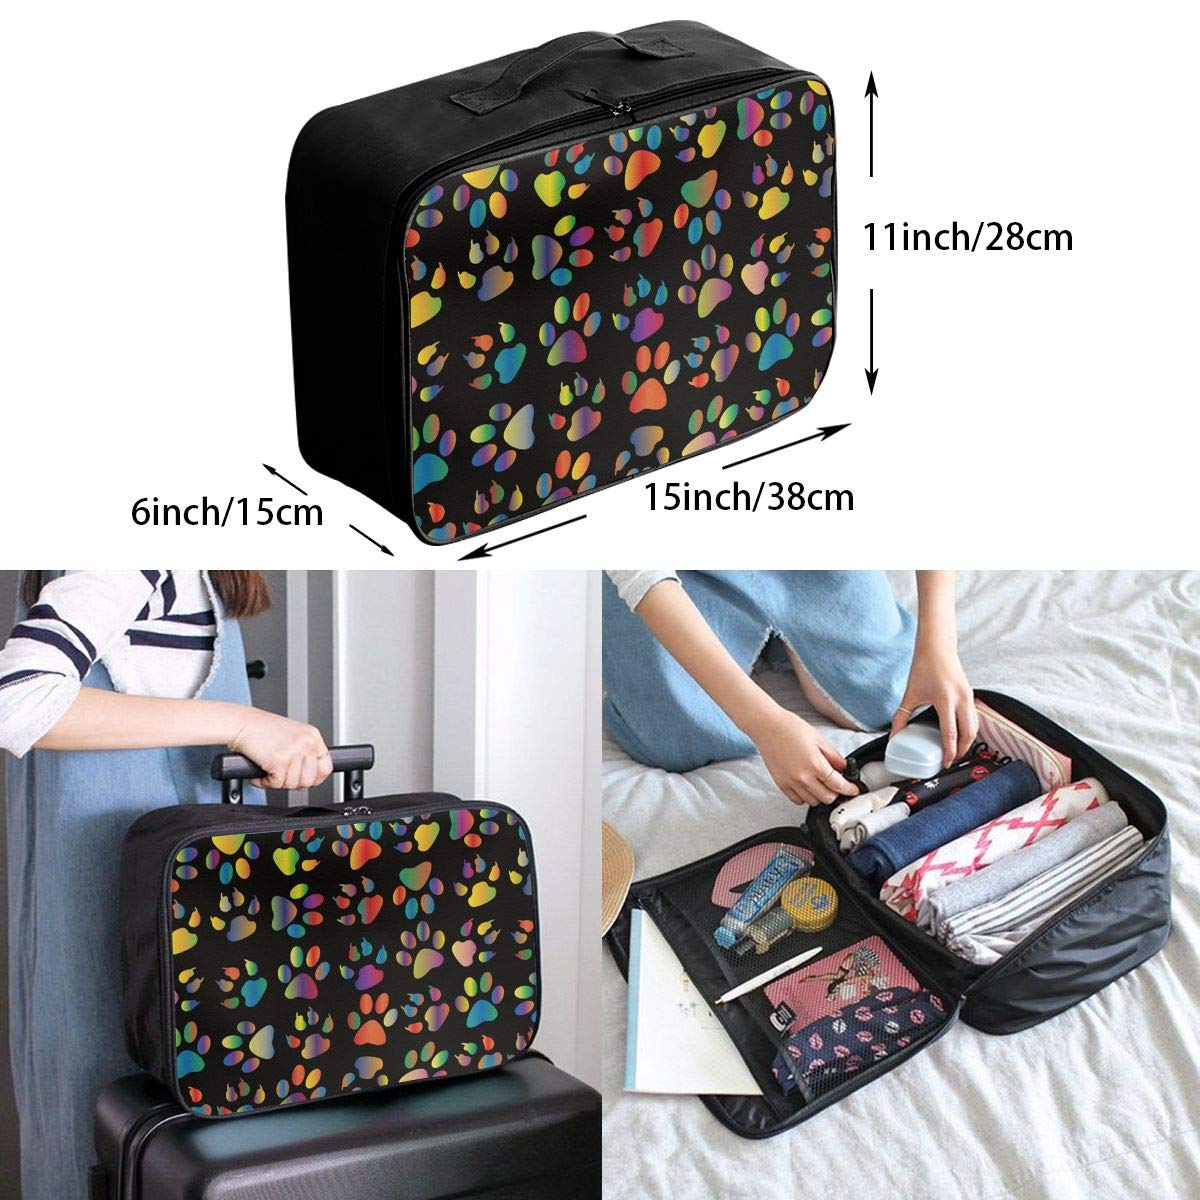 YueLJB Colorful Paw Print Lightweight Large Capacity Portable Luggage Bag Travel Duffel Bag Storage Carry Luggage Duffle Tote Bag